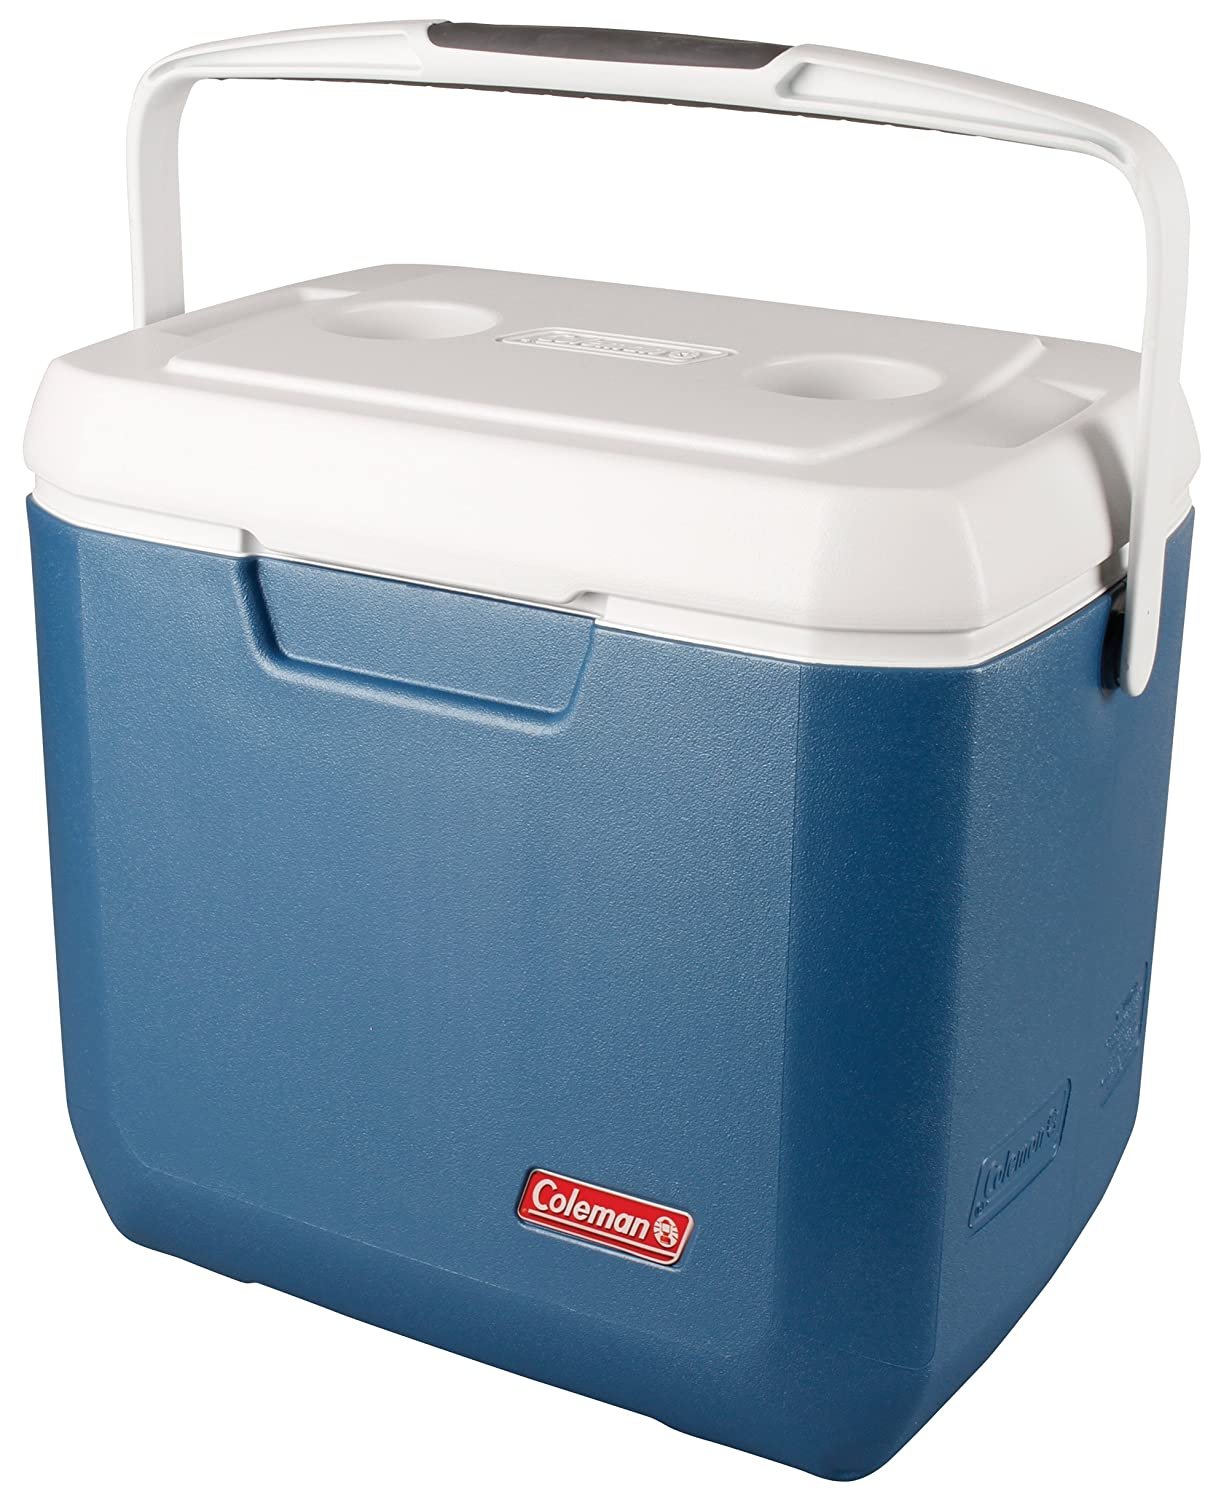 Coleman Cool Box Xtreme 28QT, small high performance cooler box, keeps ice for 3 days, Ice box for drinks, picknicks and Camping, cool box capacity 26 Liters, use with ice packs 3000004949